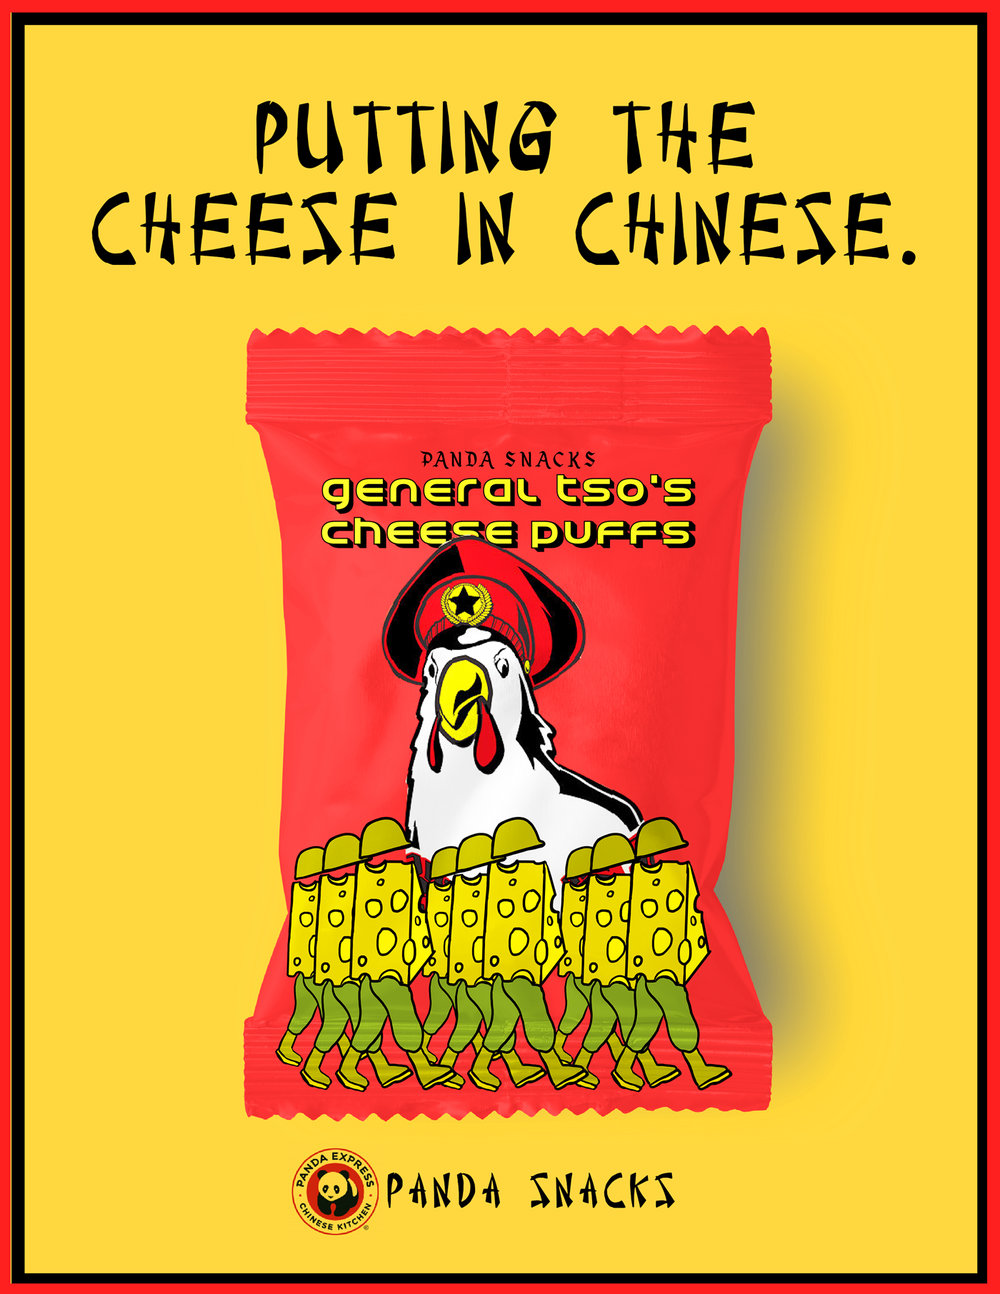 panda snacks general tsao's.png